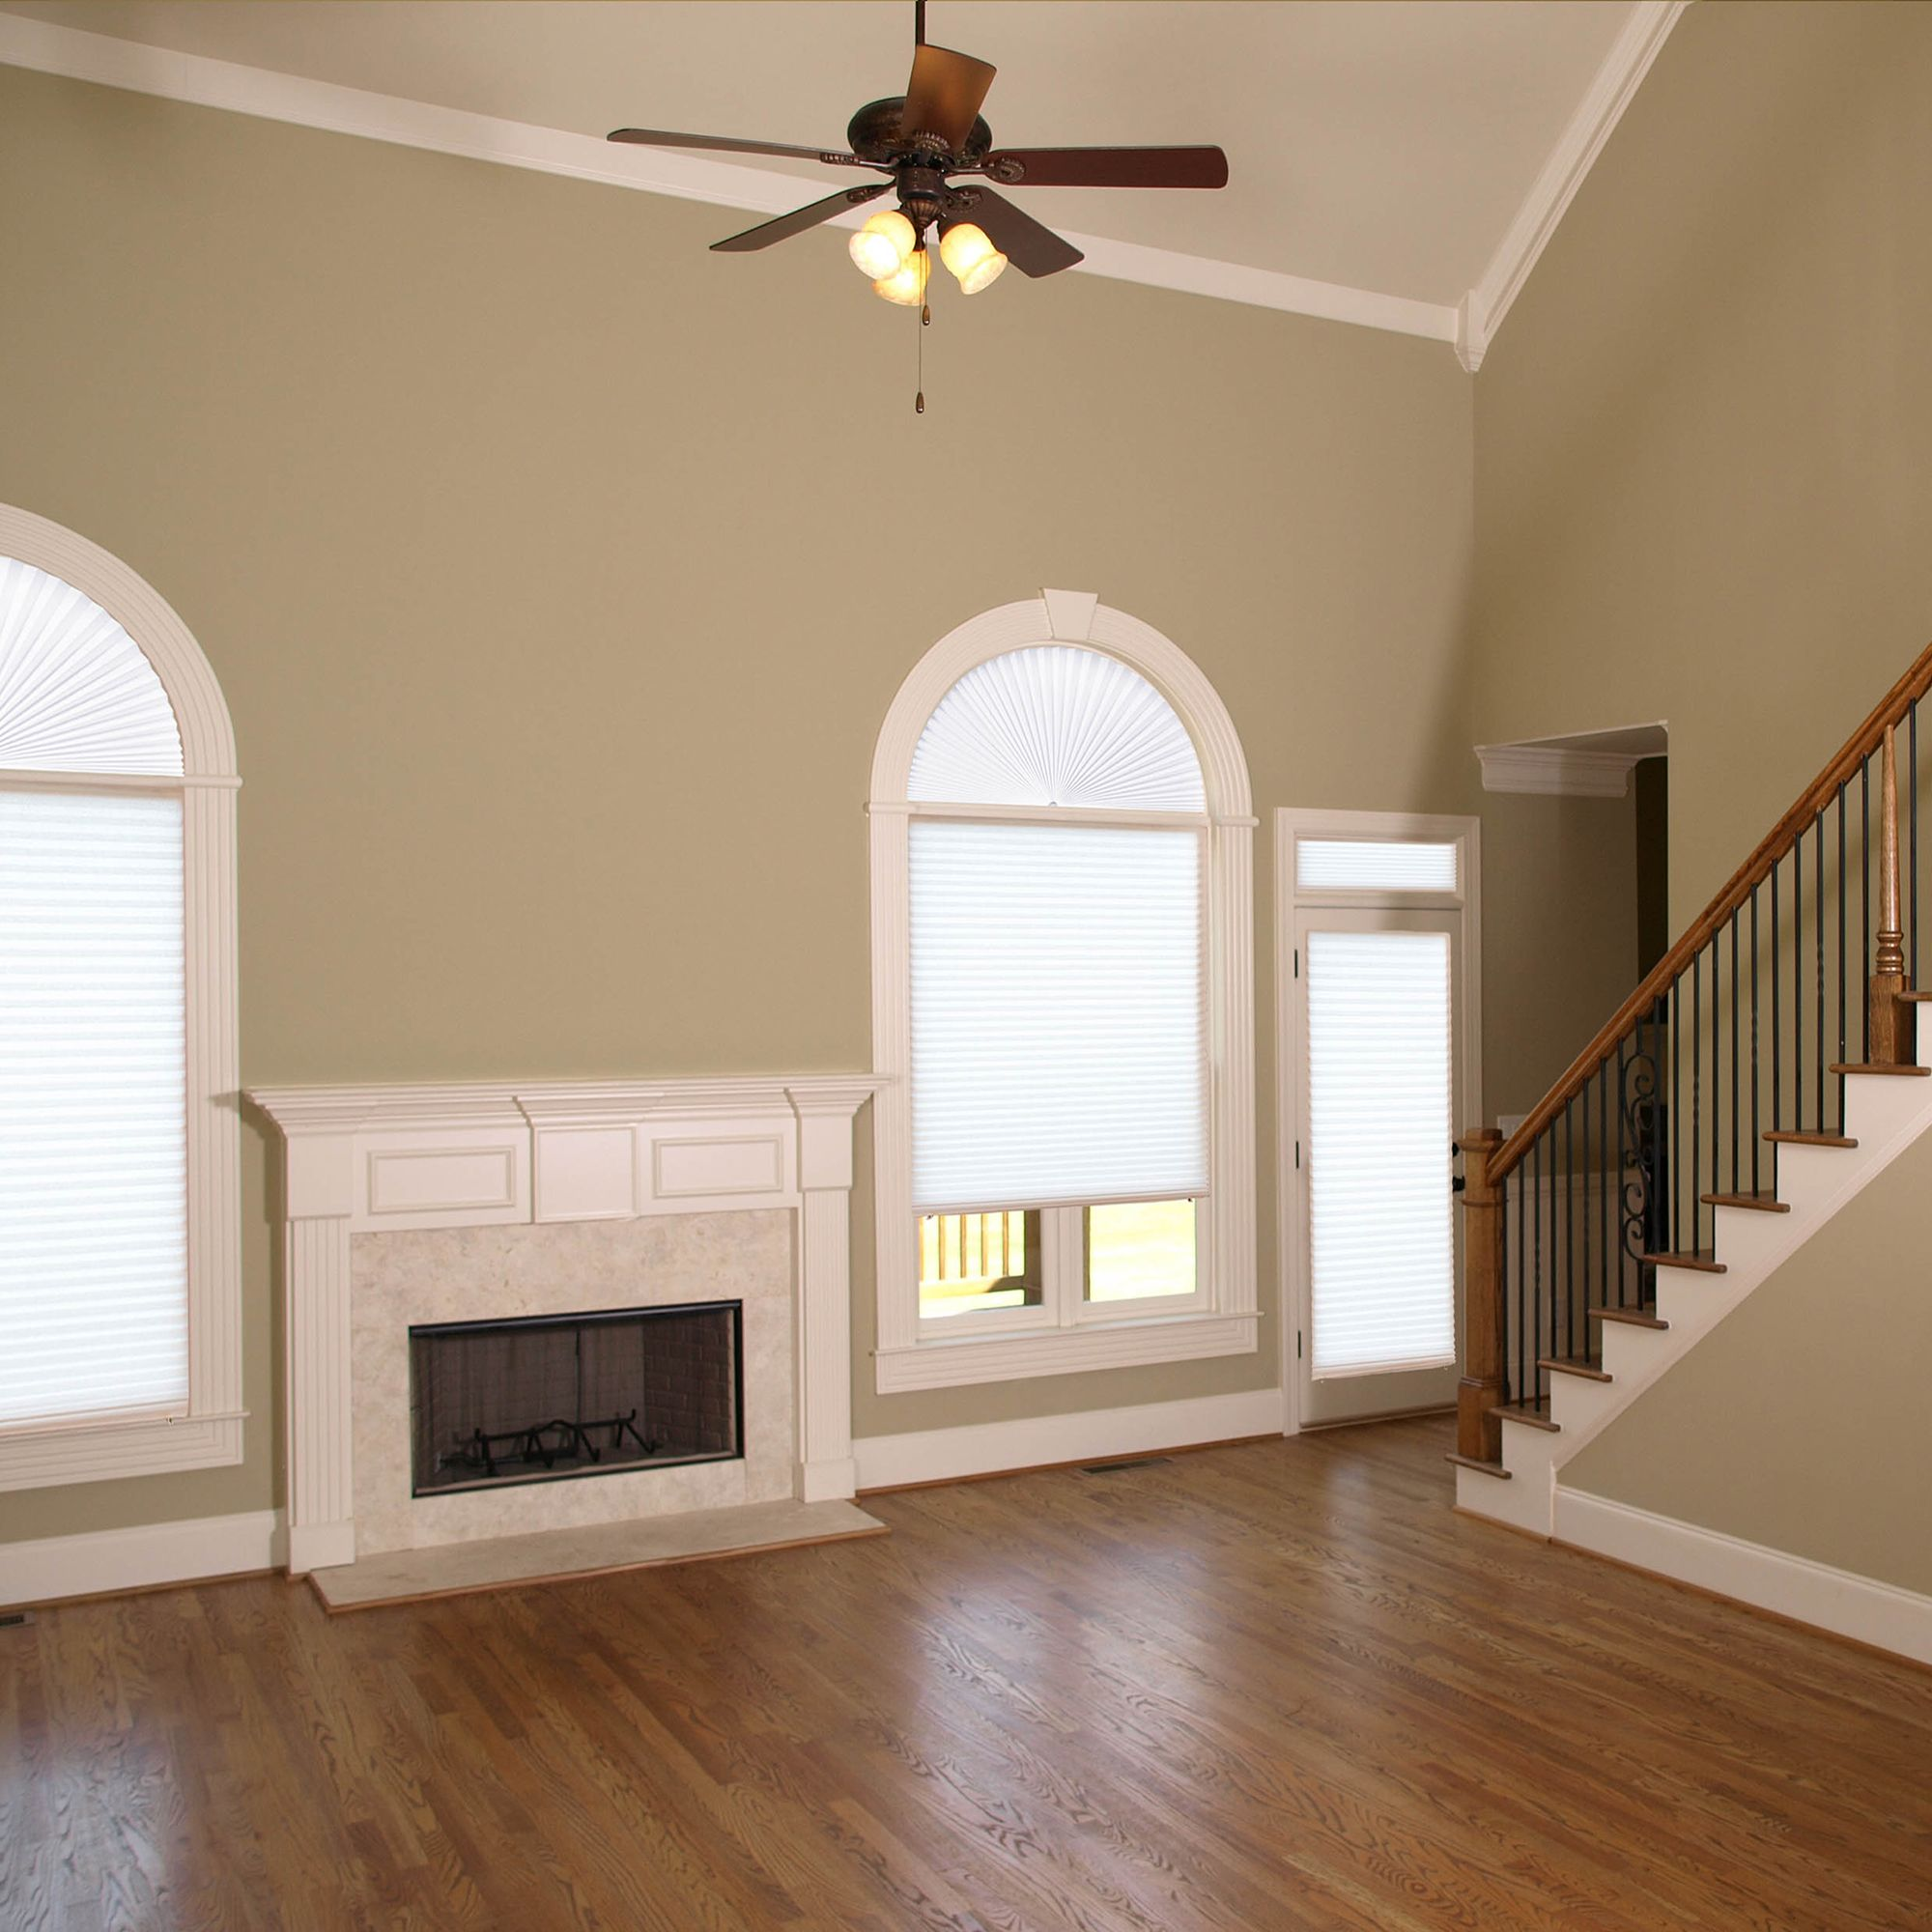 arch window shade wide original arch window shades by redi shade in light filtering white